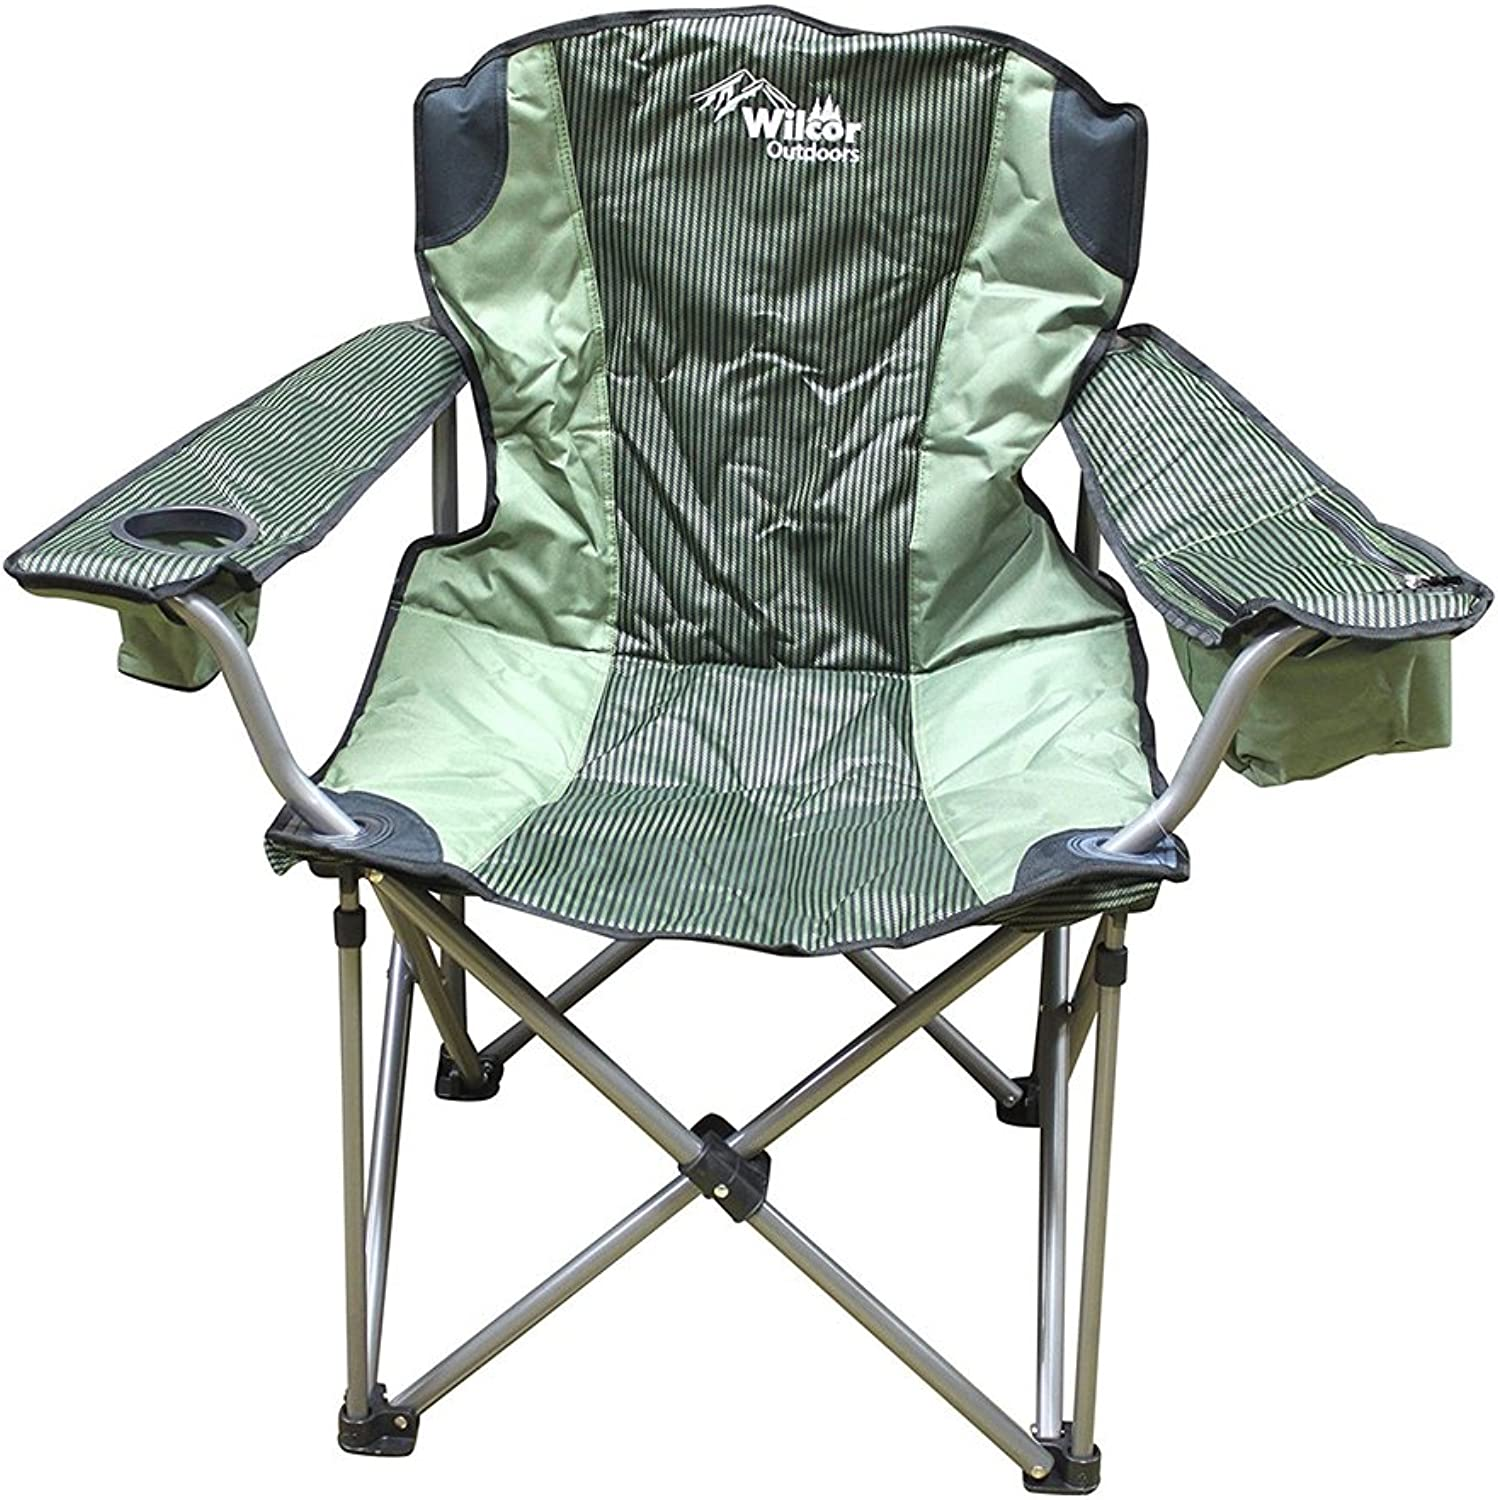 Wilcor Big & Tall King Size Chair with Carry Bag